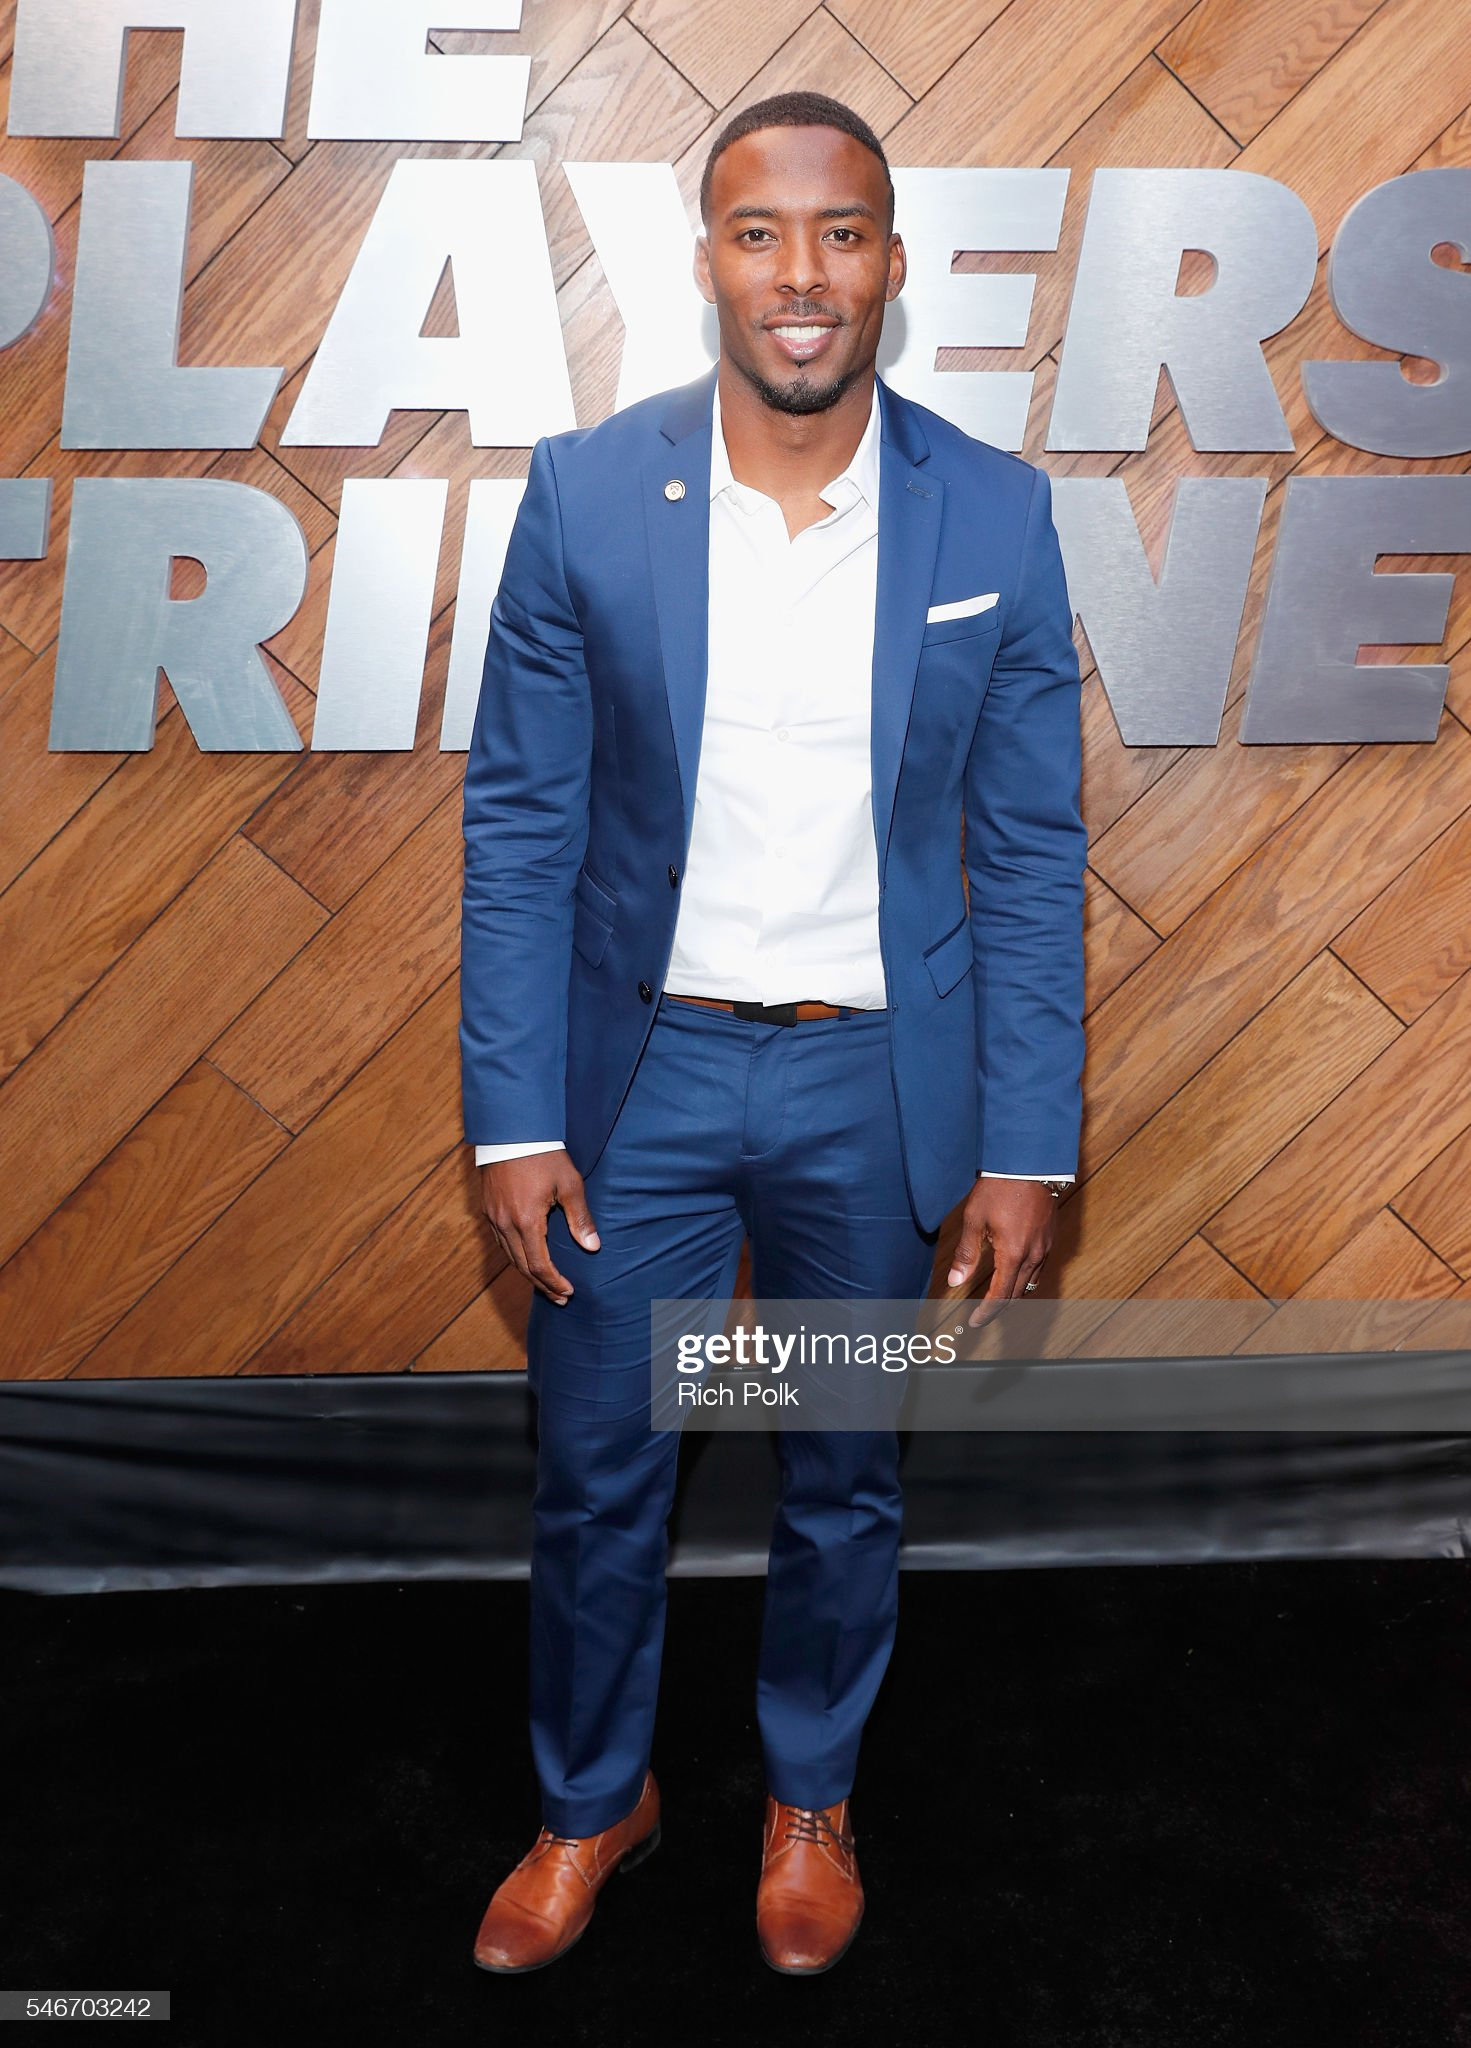 ¿Cuánto mide Andrew Hawkins? - Real height Professional-football-player-andrew-hawkins-attends-the-players-at-picture-id546703242?s=2048x2048